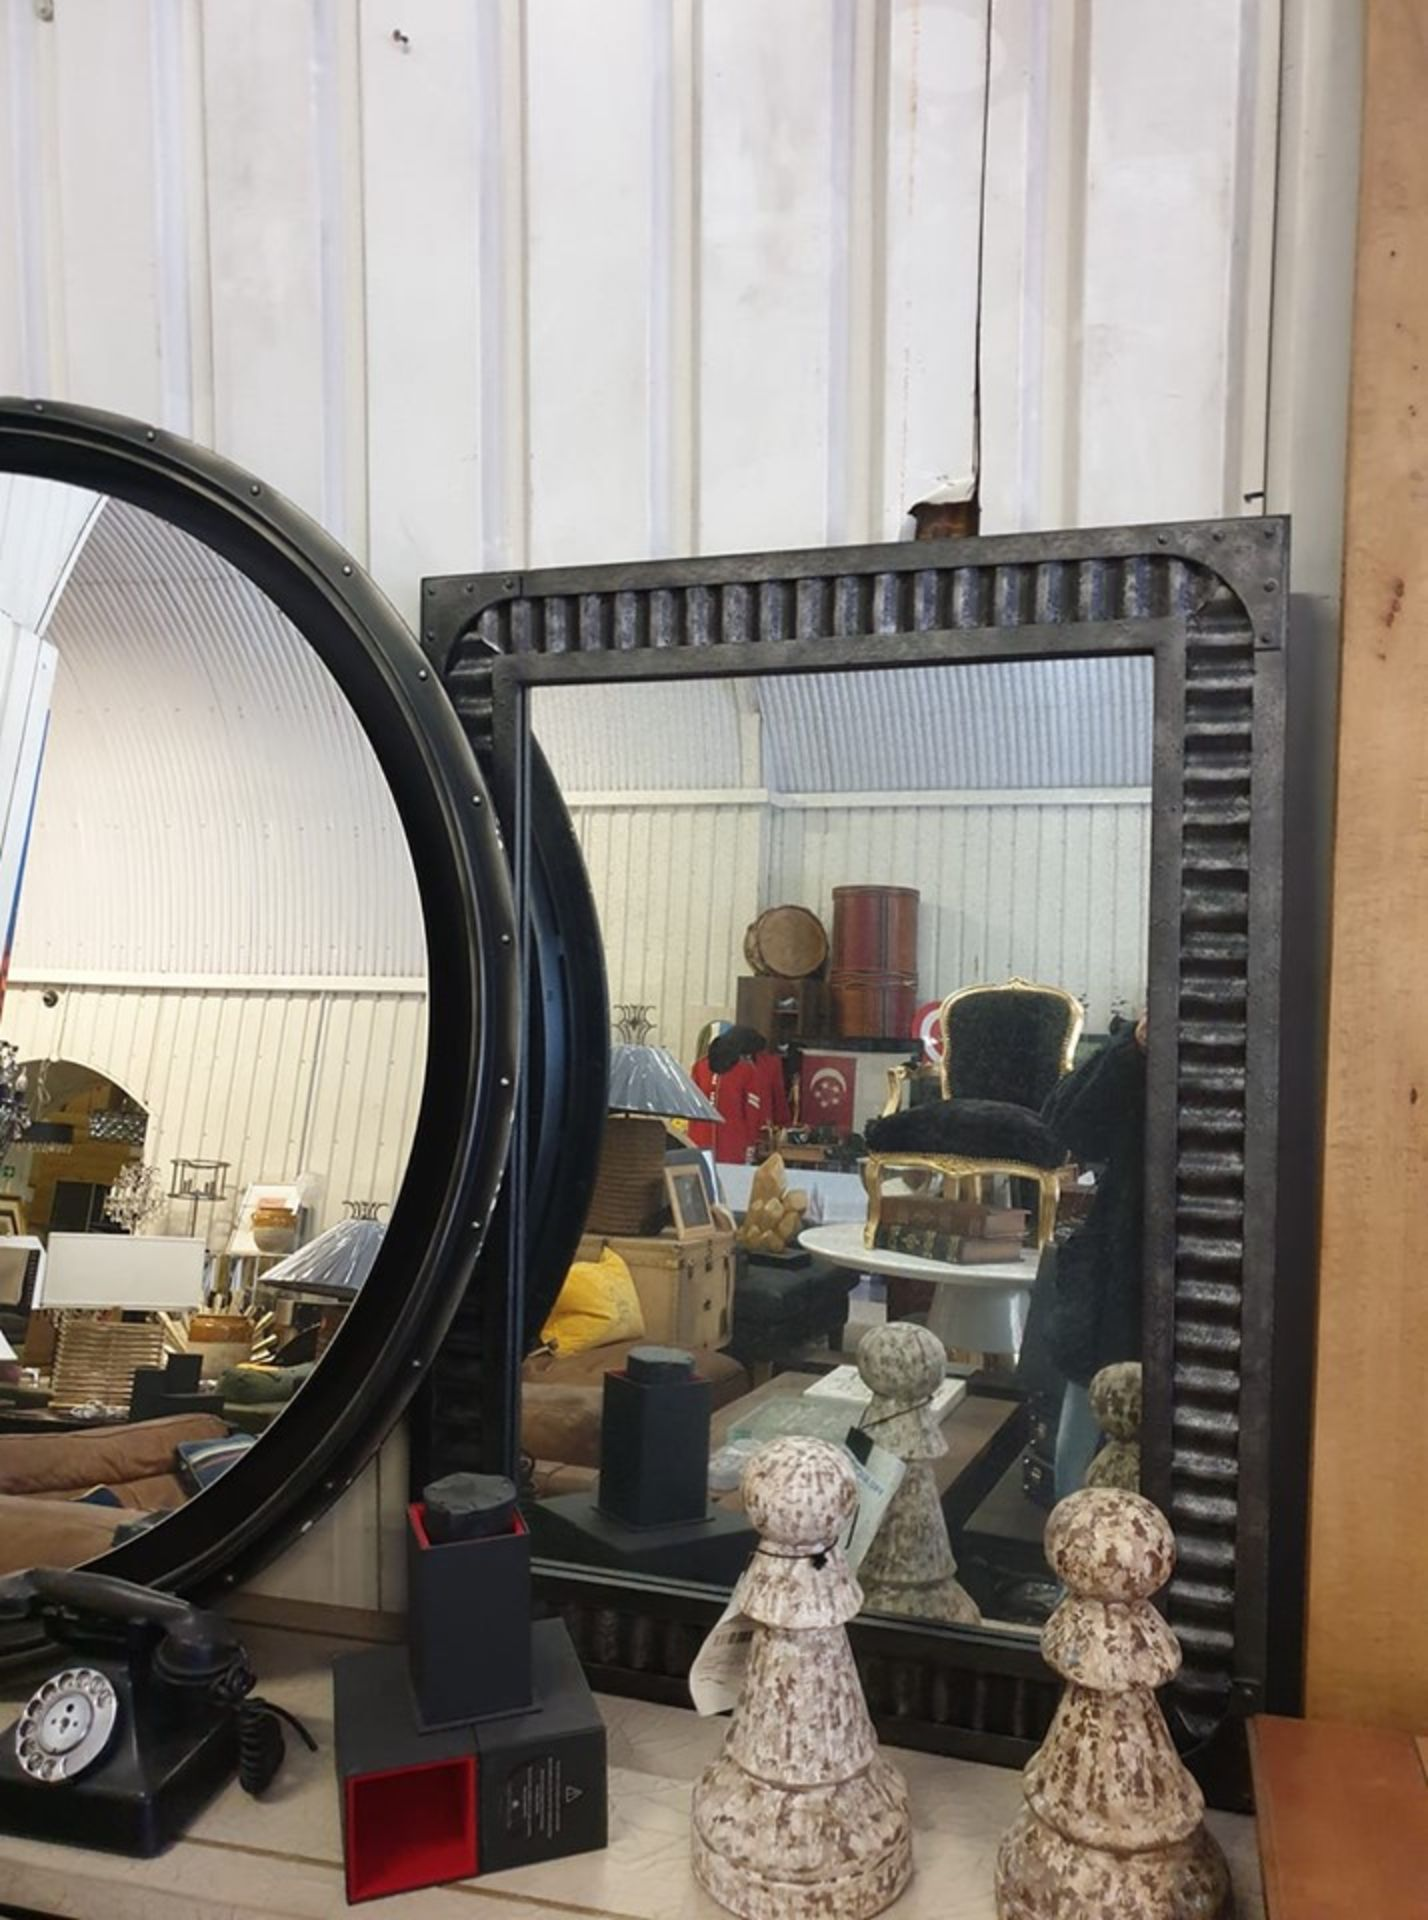 Lot 28 - Jawa Rectangular Wall Mirror Iron Frame With Corrugated Sheet Metal And Antiqued Mirror Plate A